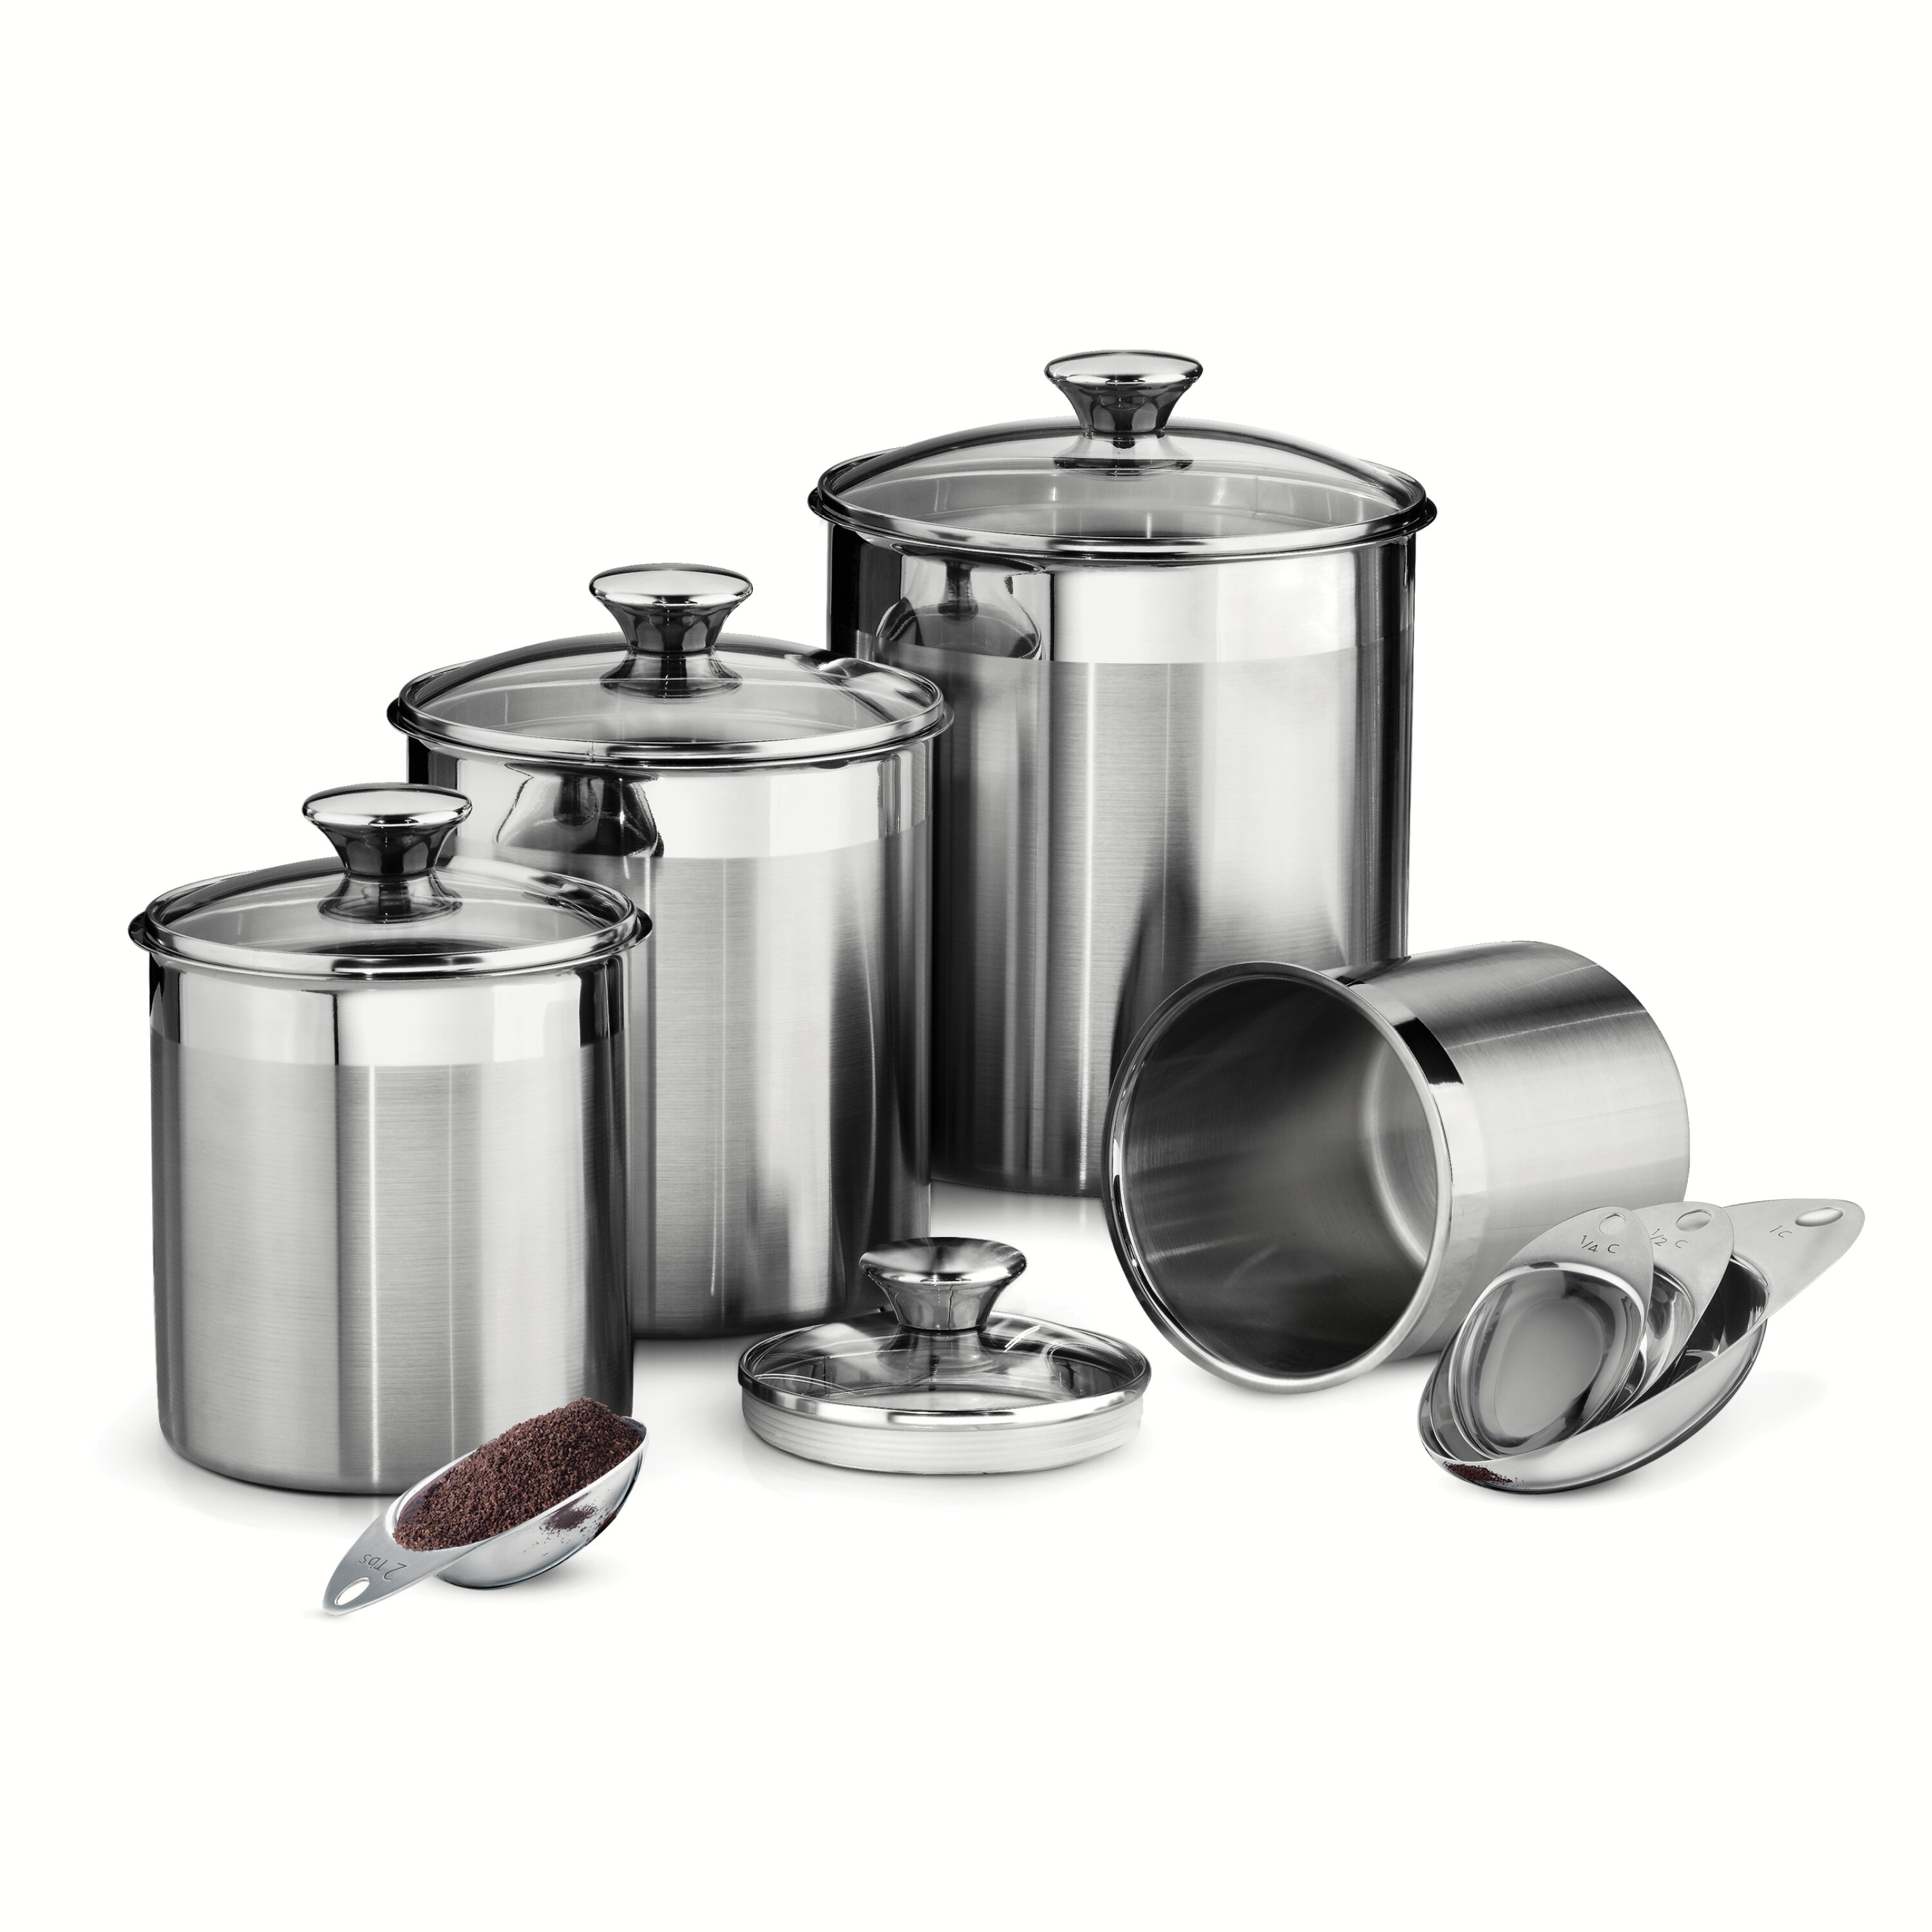 Tramontina gourmet 4 piece kitchen canister set reviews for Hearth and home designs canister set